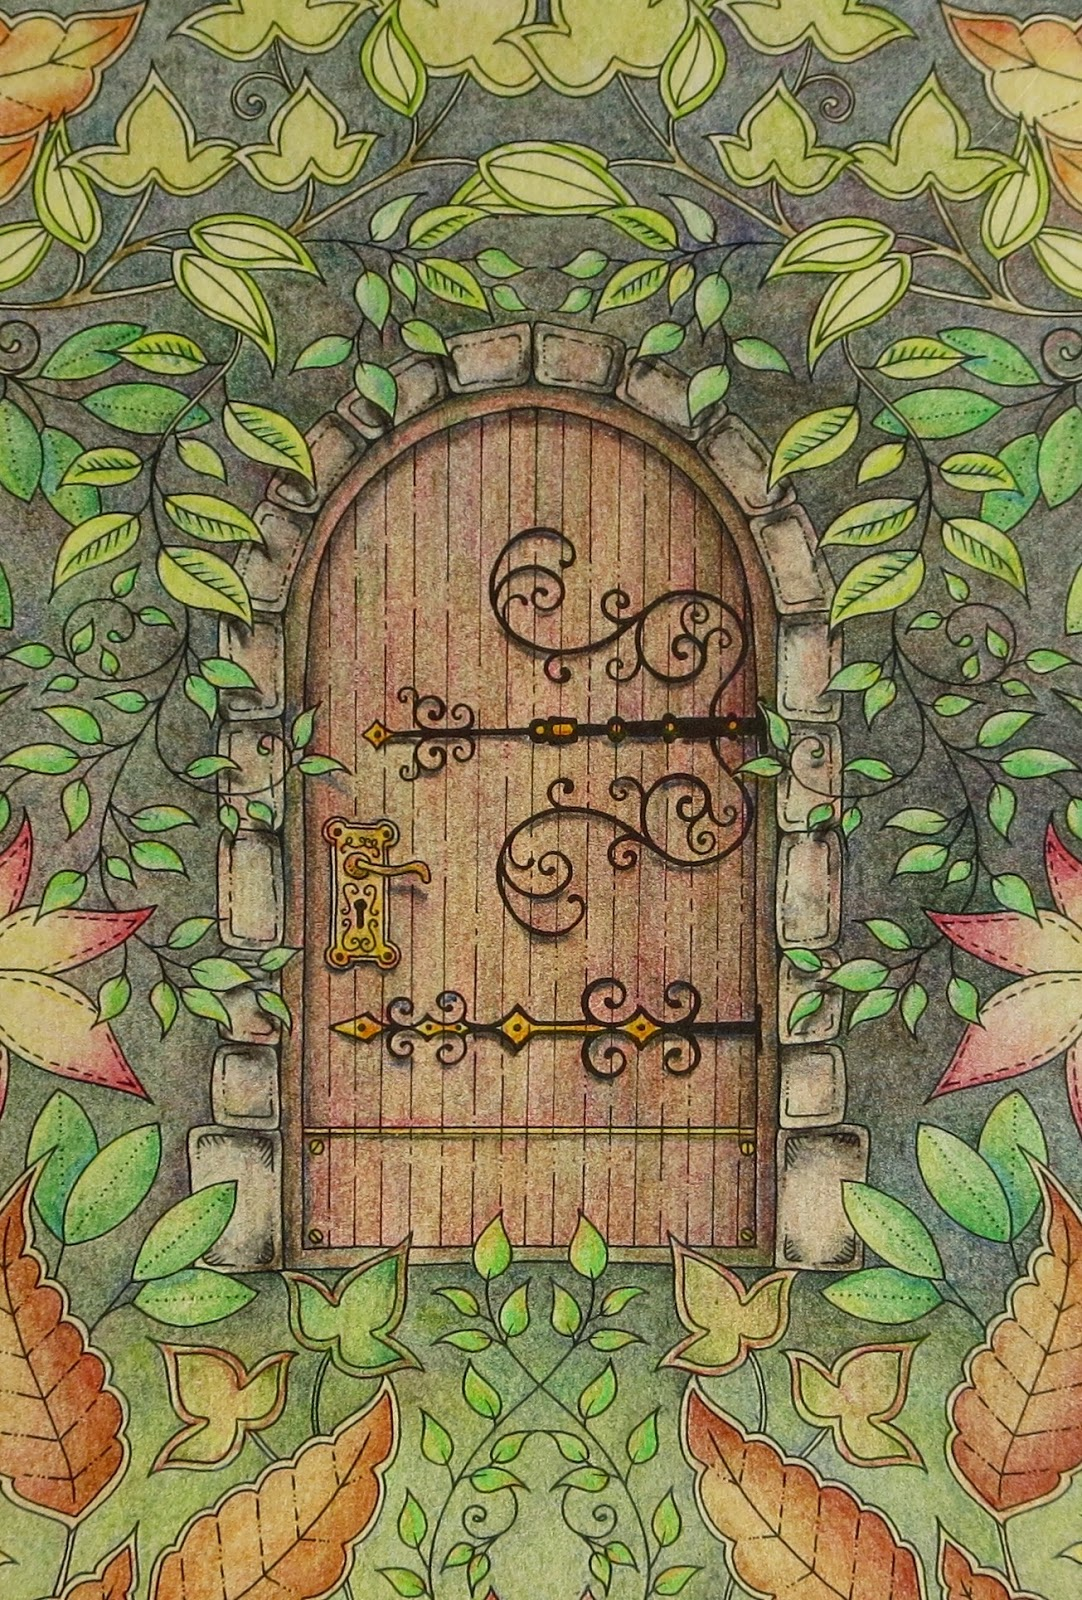 Secret Garden: Passion For Pencils: My Secret Garden Colouring Book, Part 4